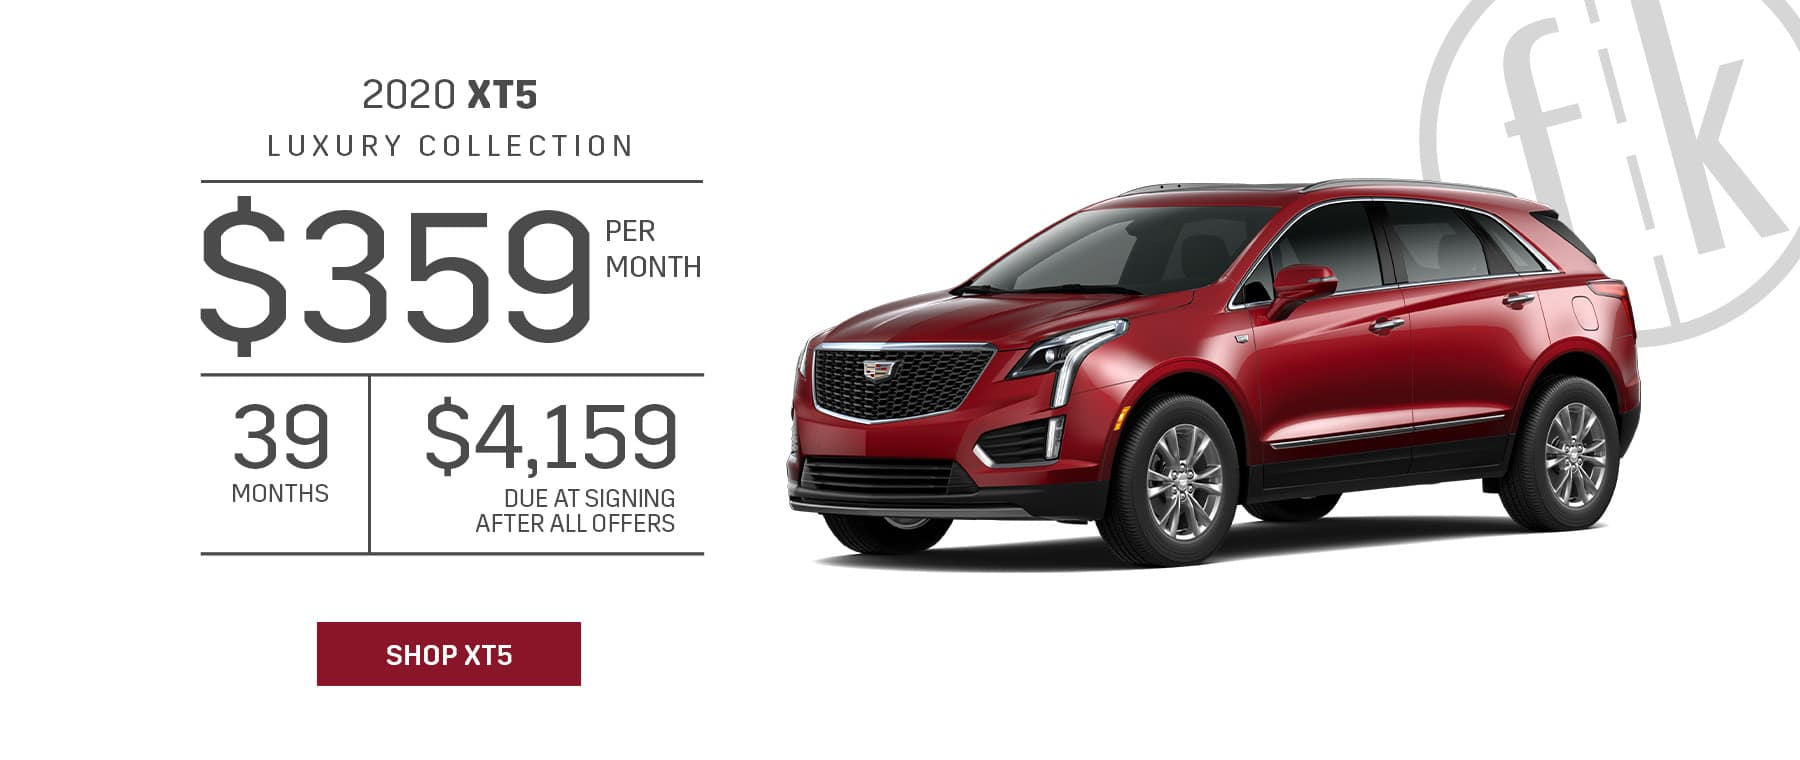 2020 XT5 FWD Luxury $359/mo for 39 mos. with $4,159 DAS